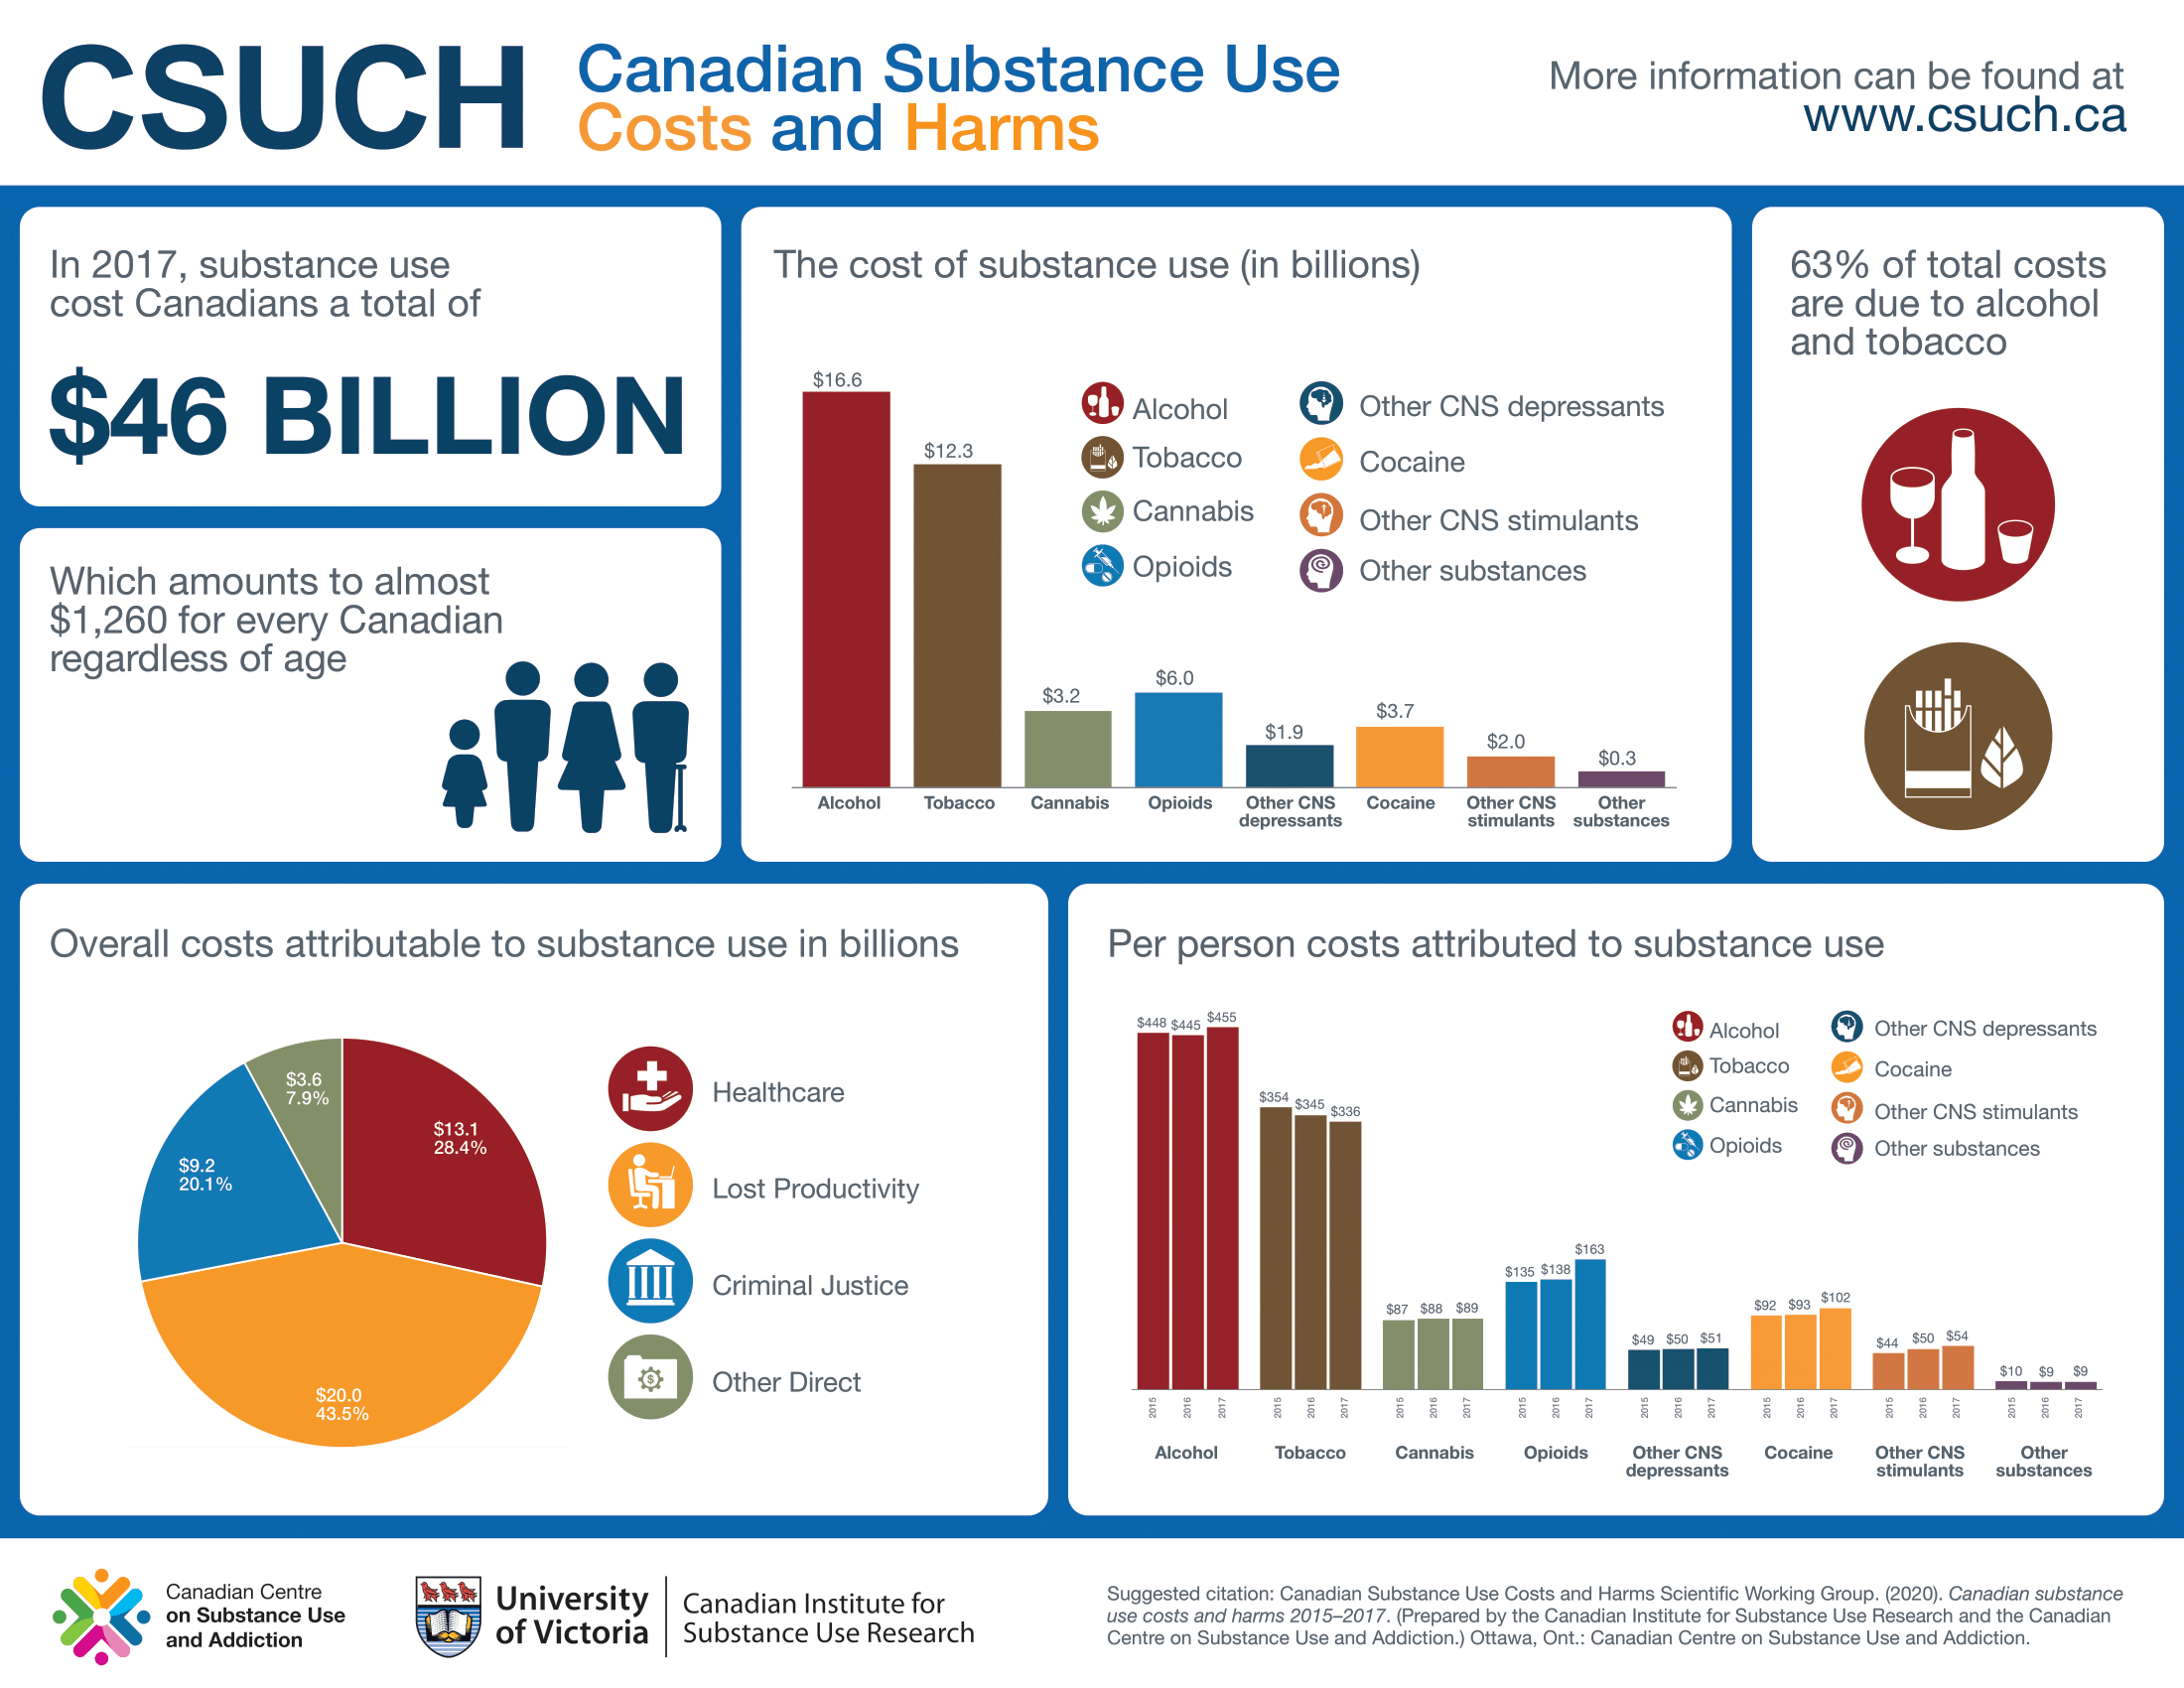 CSUCH-Canadian-Substance-Use-Costs-Harms-Infographic-2020-en_0-1